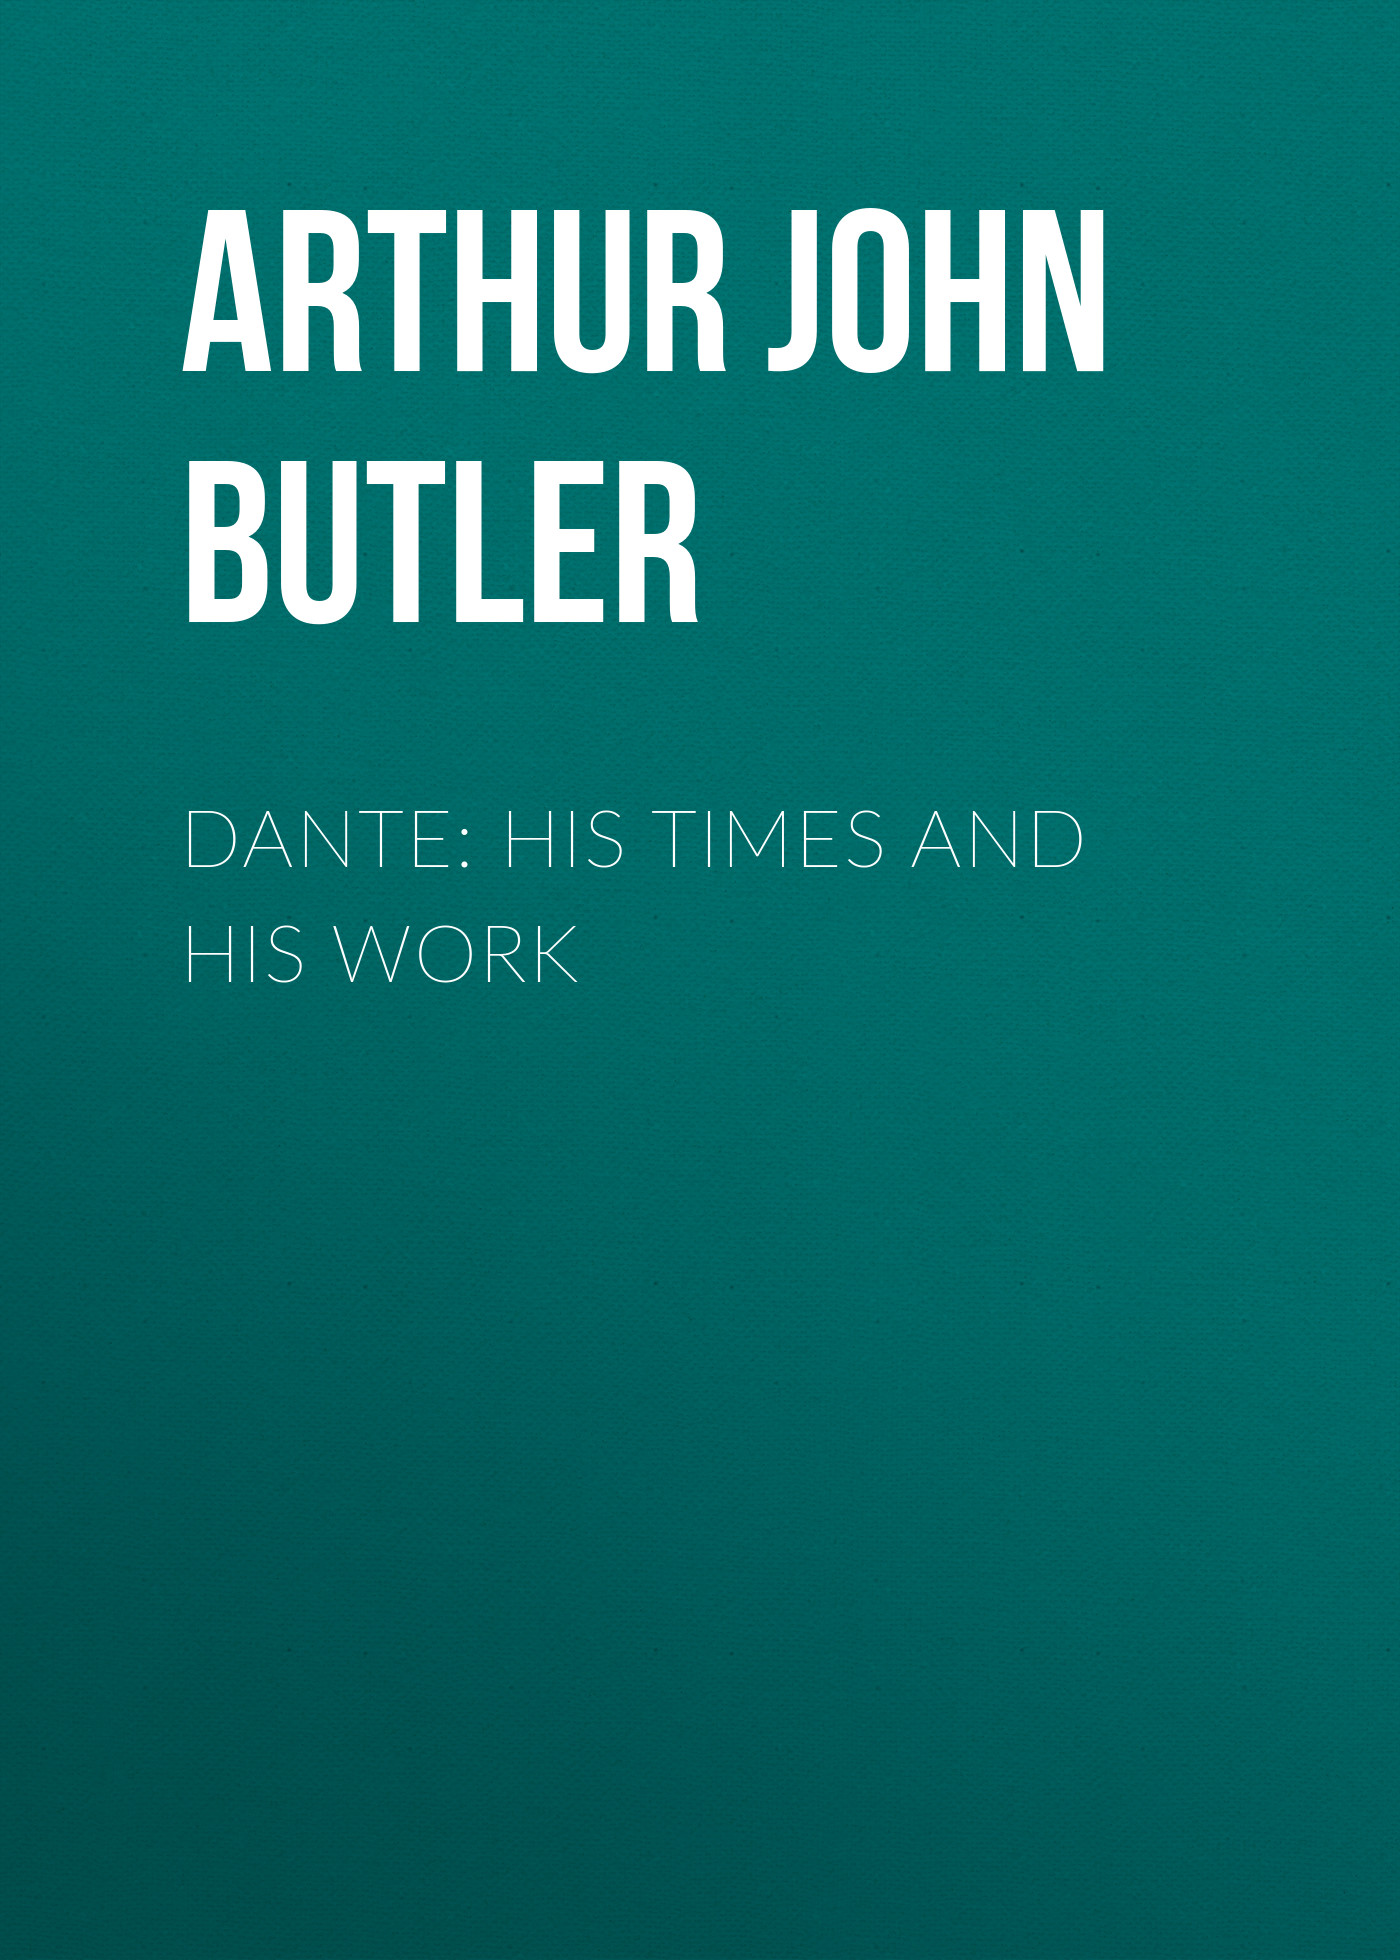 Arthur John Butler Dante: His Times and His Work arthur o shaughnessy arthur o shaughnessy his life and his work